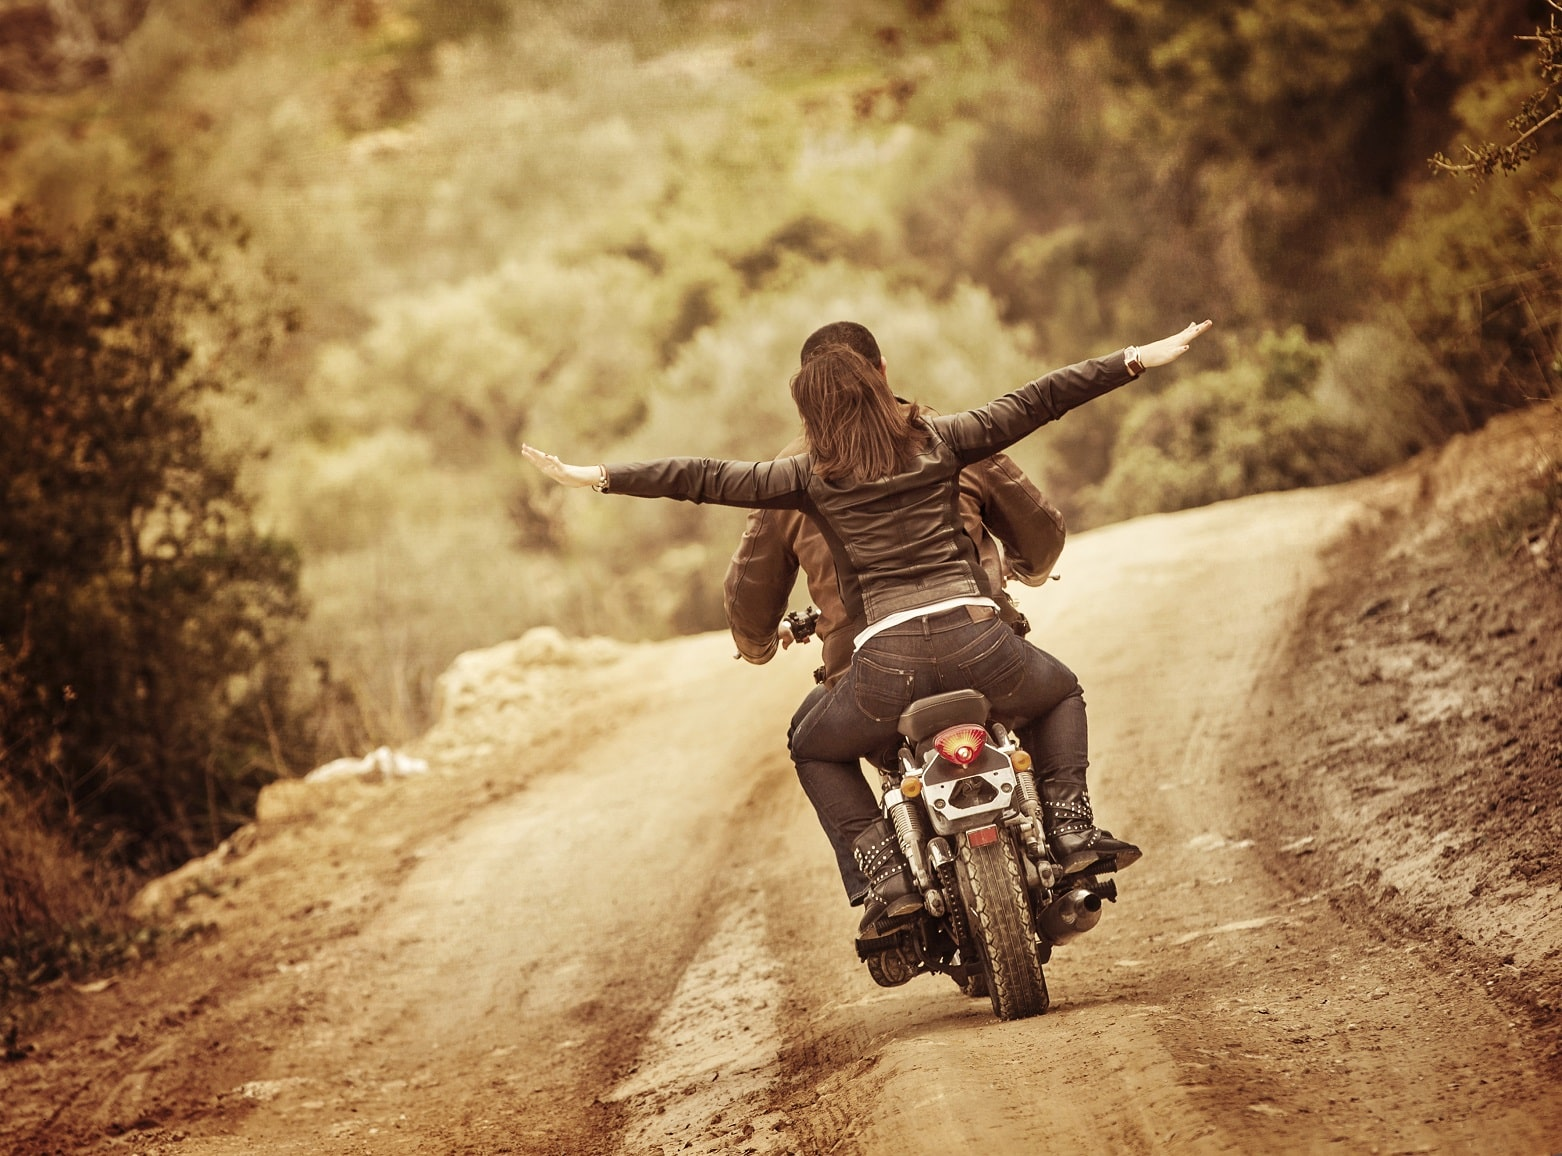 5 Most Important Things You Should Know If You Drive A Two-Wheeler In India